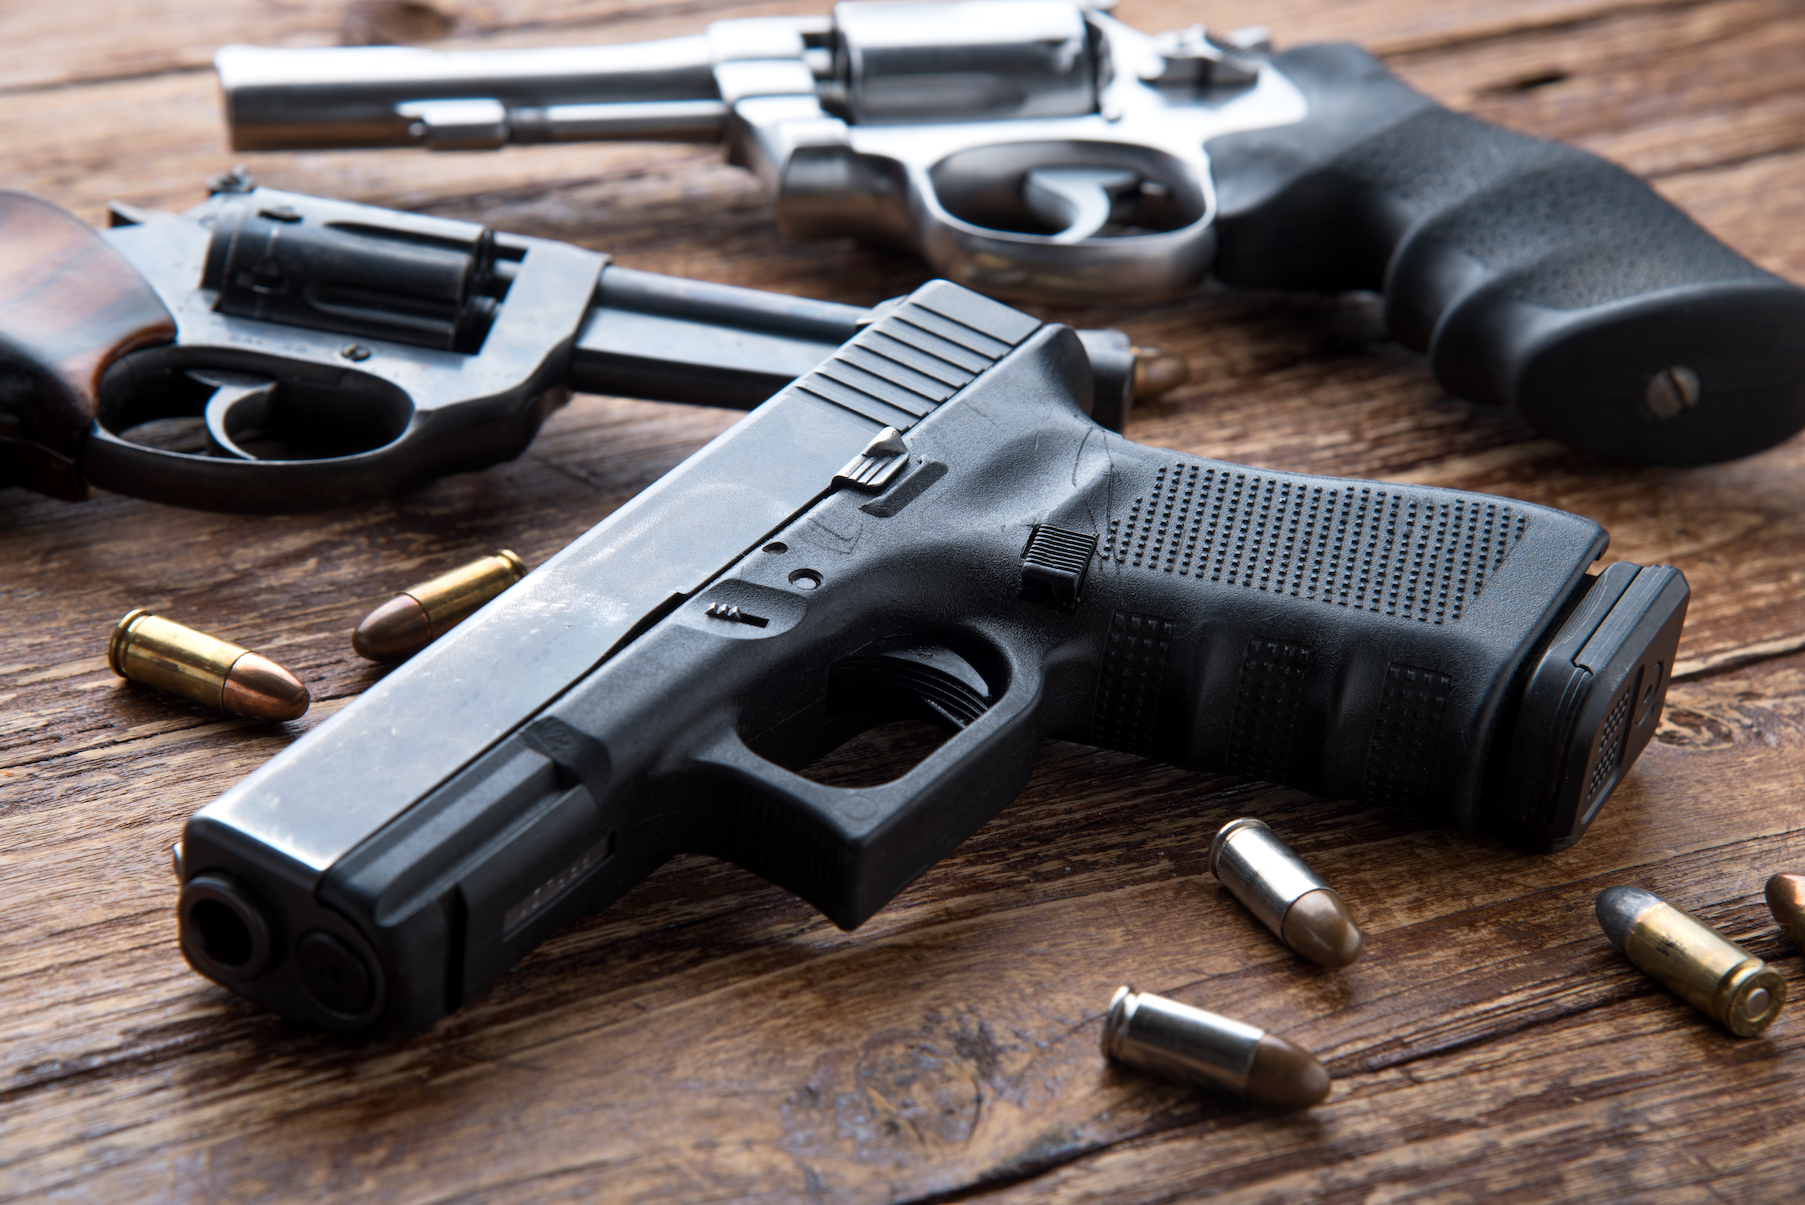 Researchers found that the reason suicide rates were higher in rural areas was because of easier access to firearms.